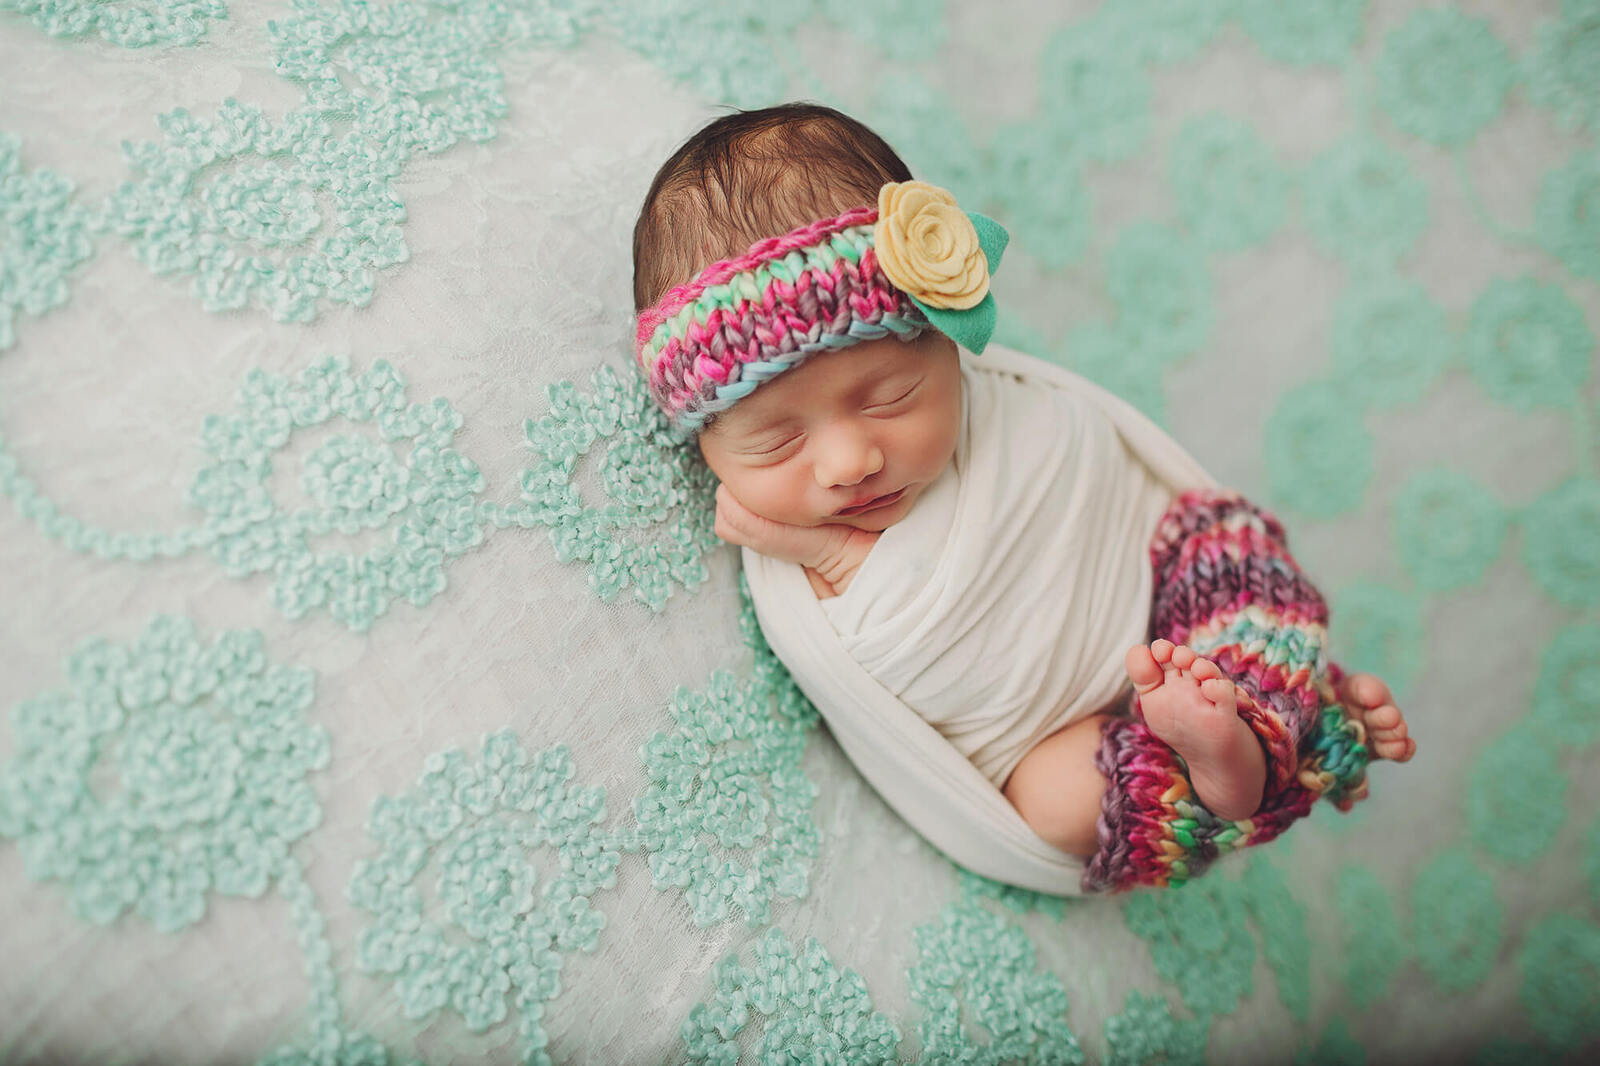 Newborn baby girl wearing leg warmers and a headband during her newborn session with Belle Vie Photography of Wiesbaden